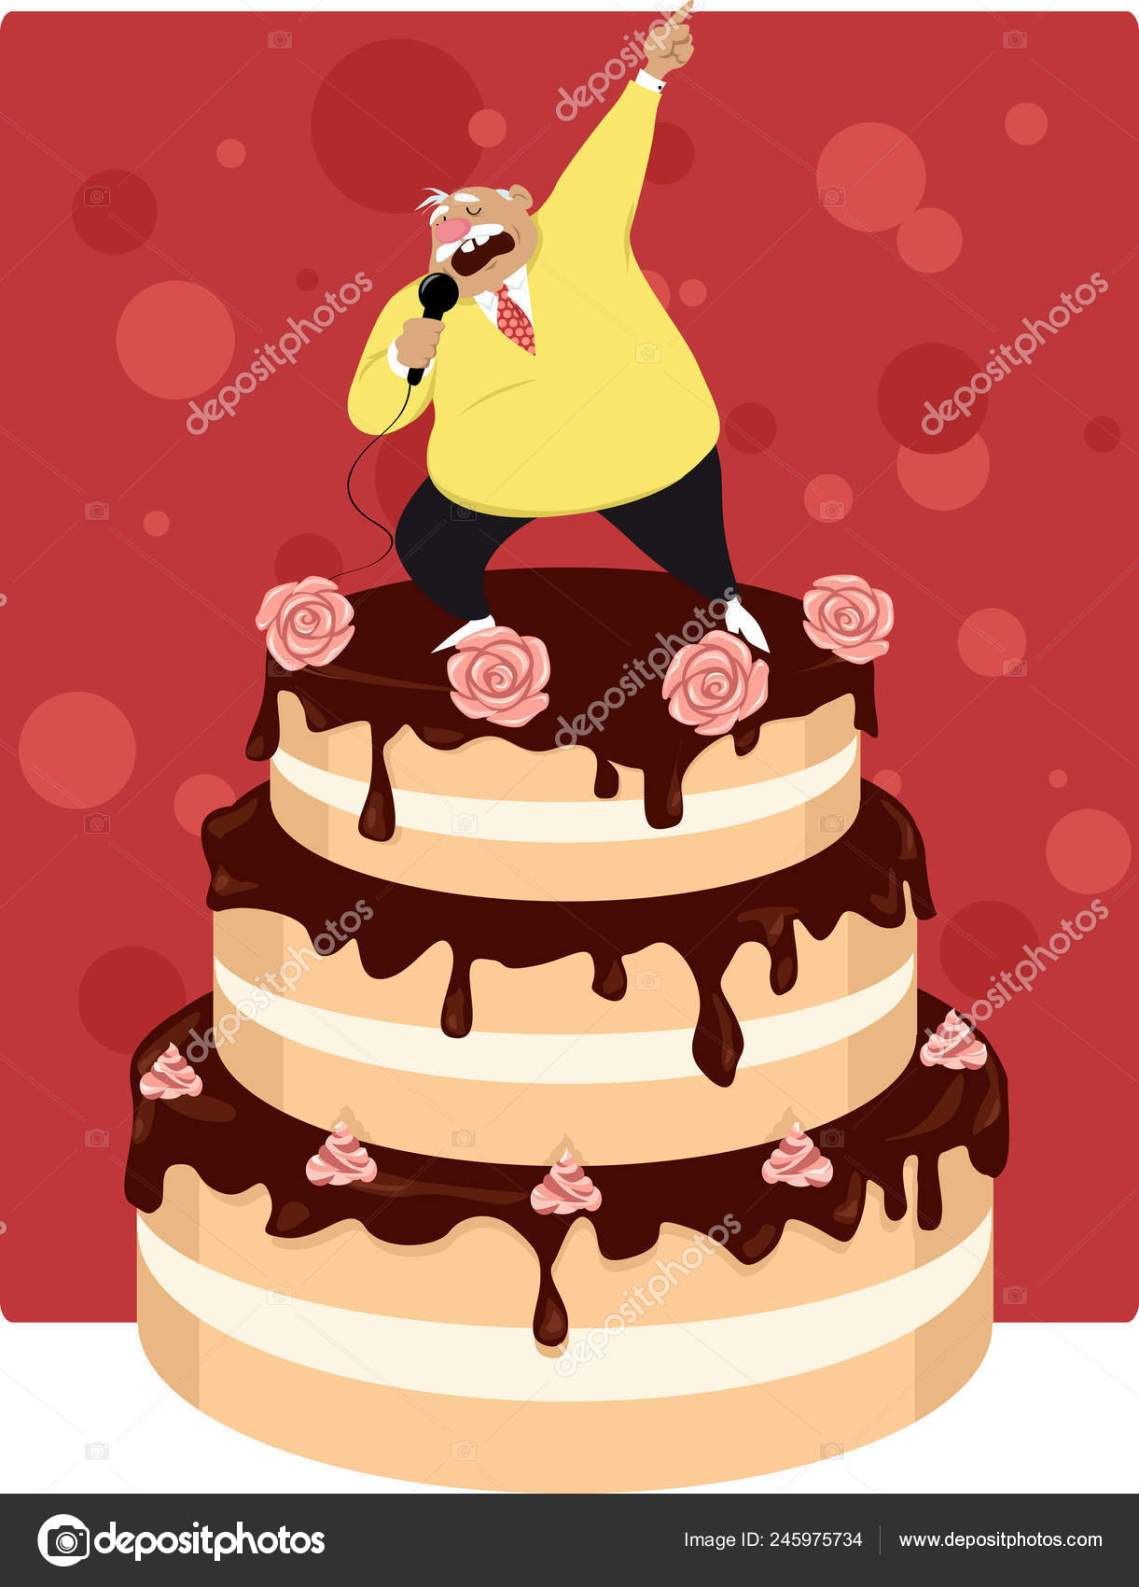 Sensational Funny Birthday Cake For Old Man The Cake Boutique Funny Birthday Cards Online Drosicarndamsfinfo